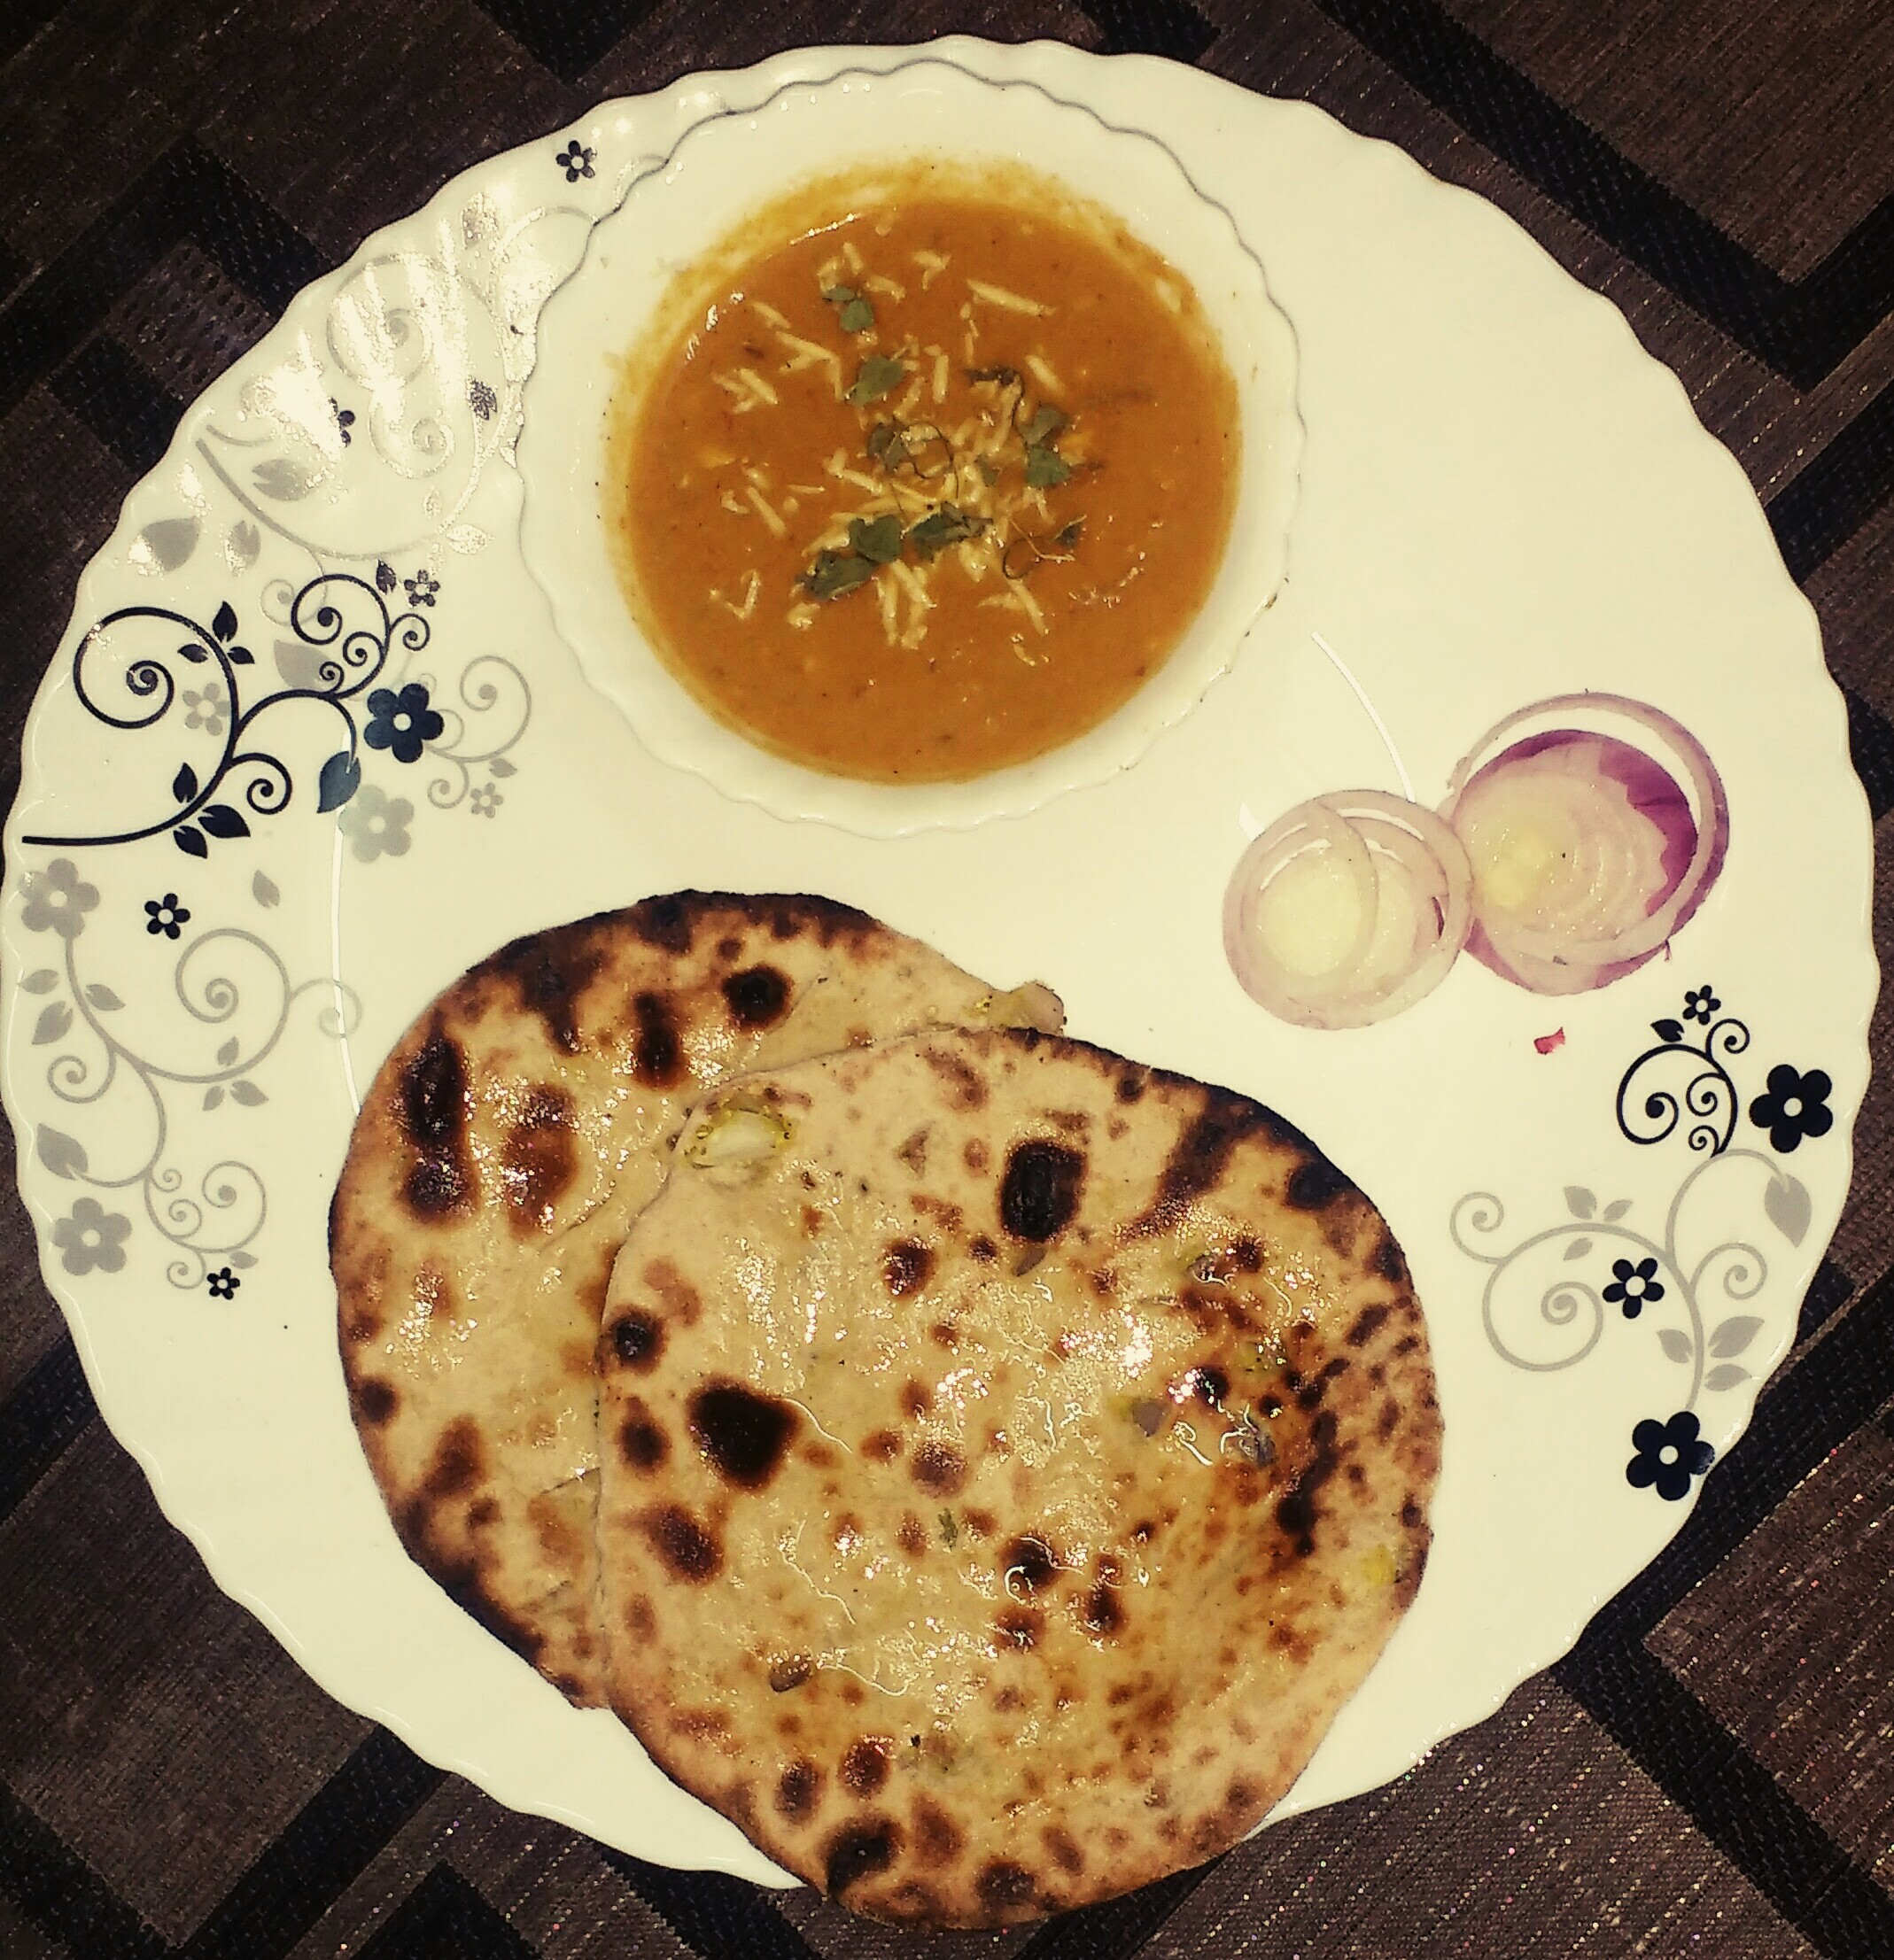 Tofu naan with gravy